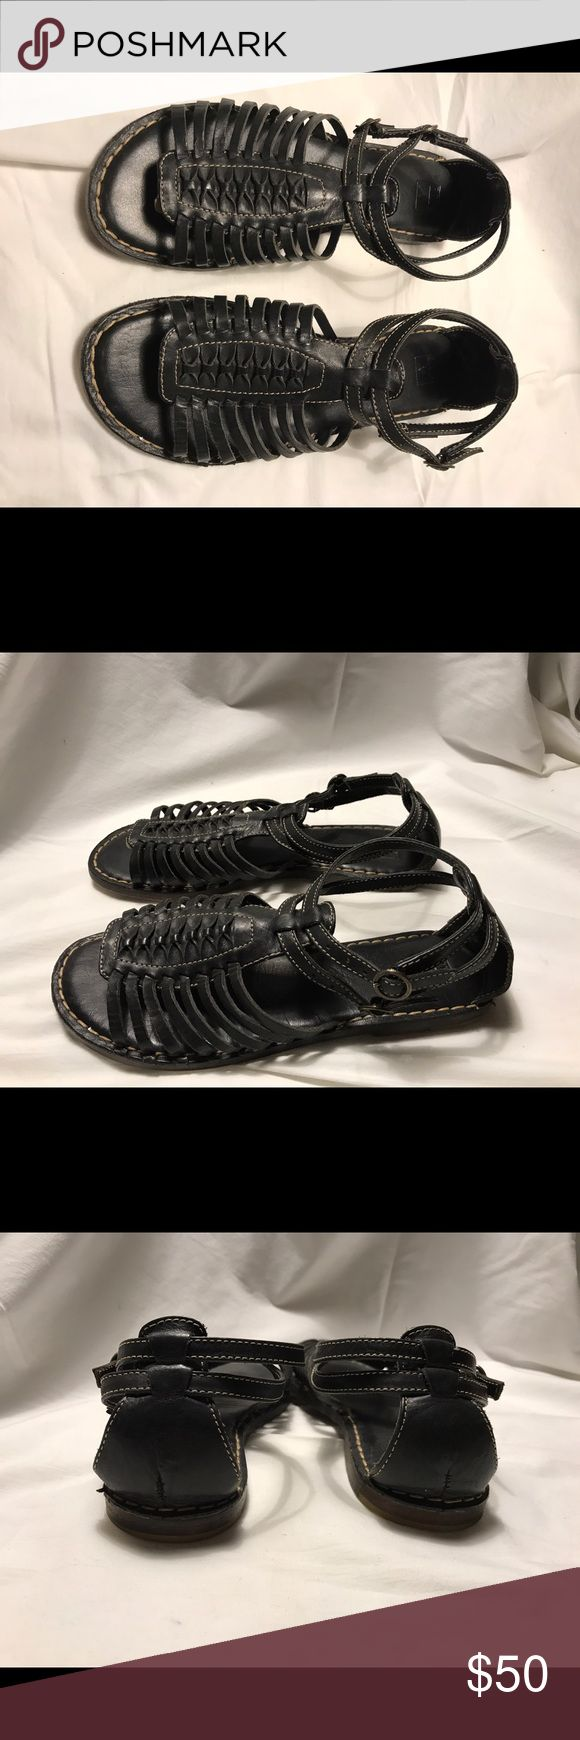 Frye Black Leather Flat Gladiator Sandals Size 7 In very good used condition. Please review pictures, and ask questions. I am not accepting returns. Frye Shoes Sandals